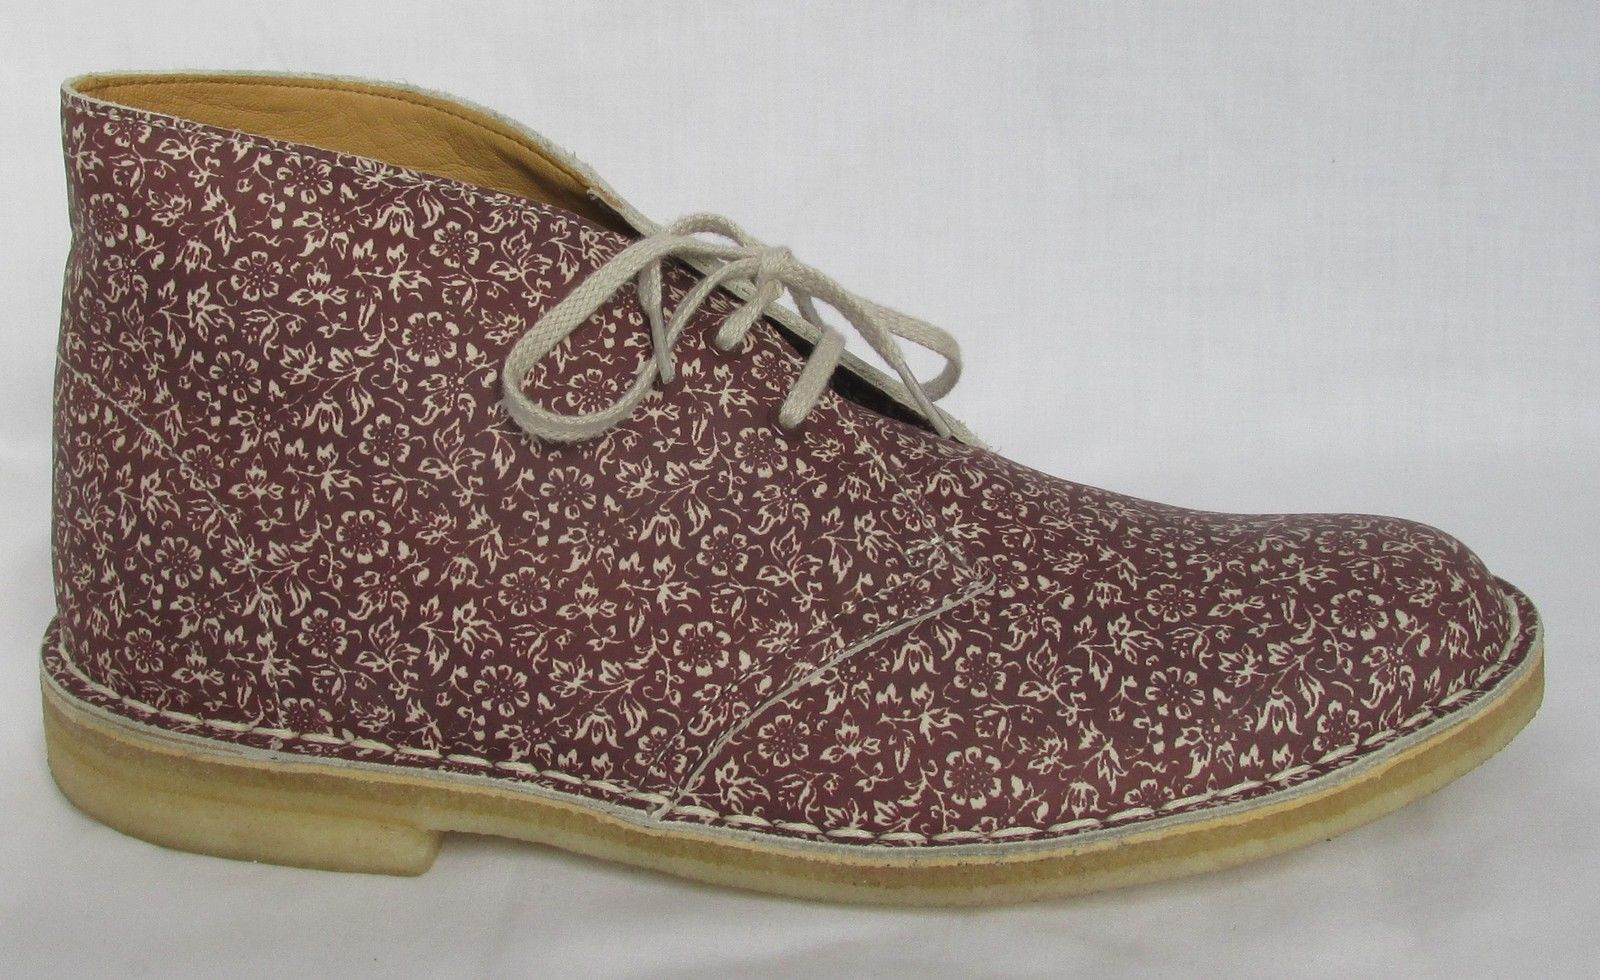 Clarks Original rrp89.99 Damen Wüstenstiefel Rose Hip rrp89.99 Original UK 3.5/3 1e810f